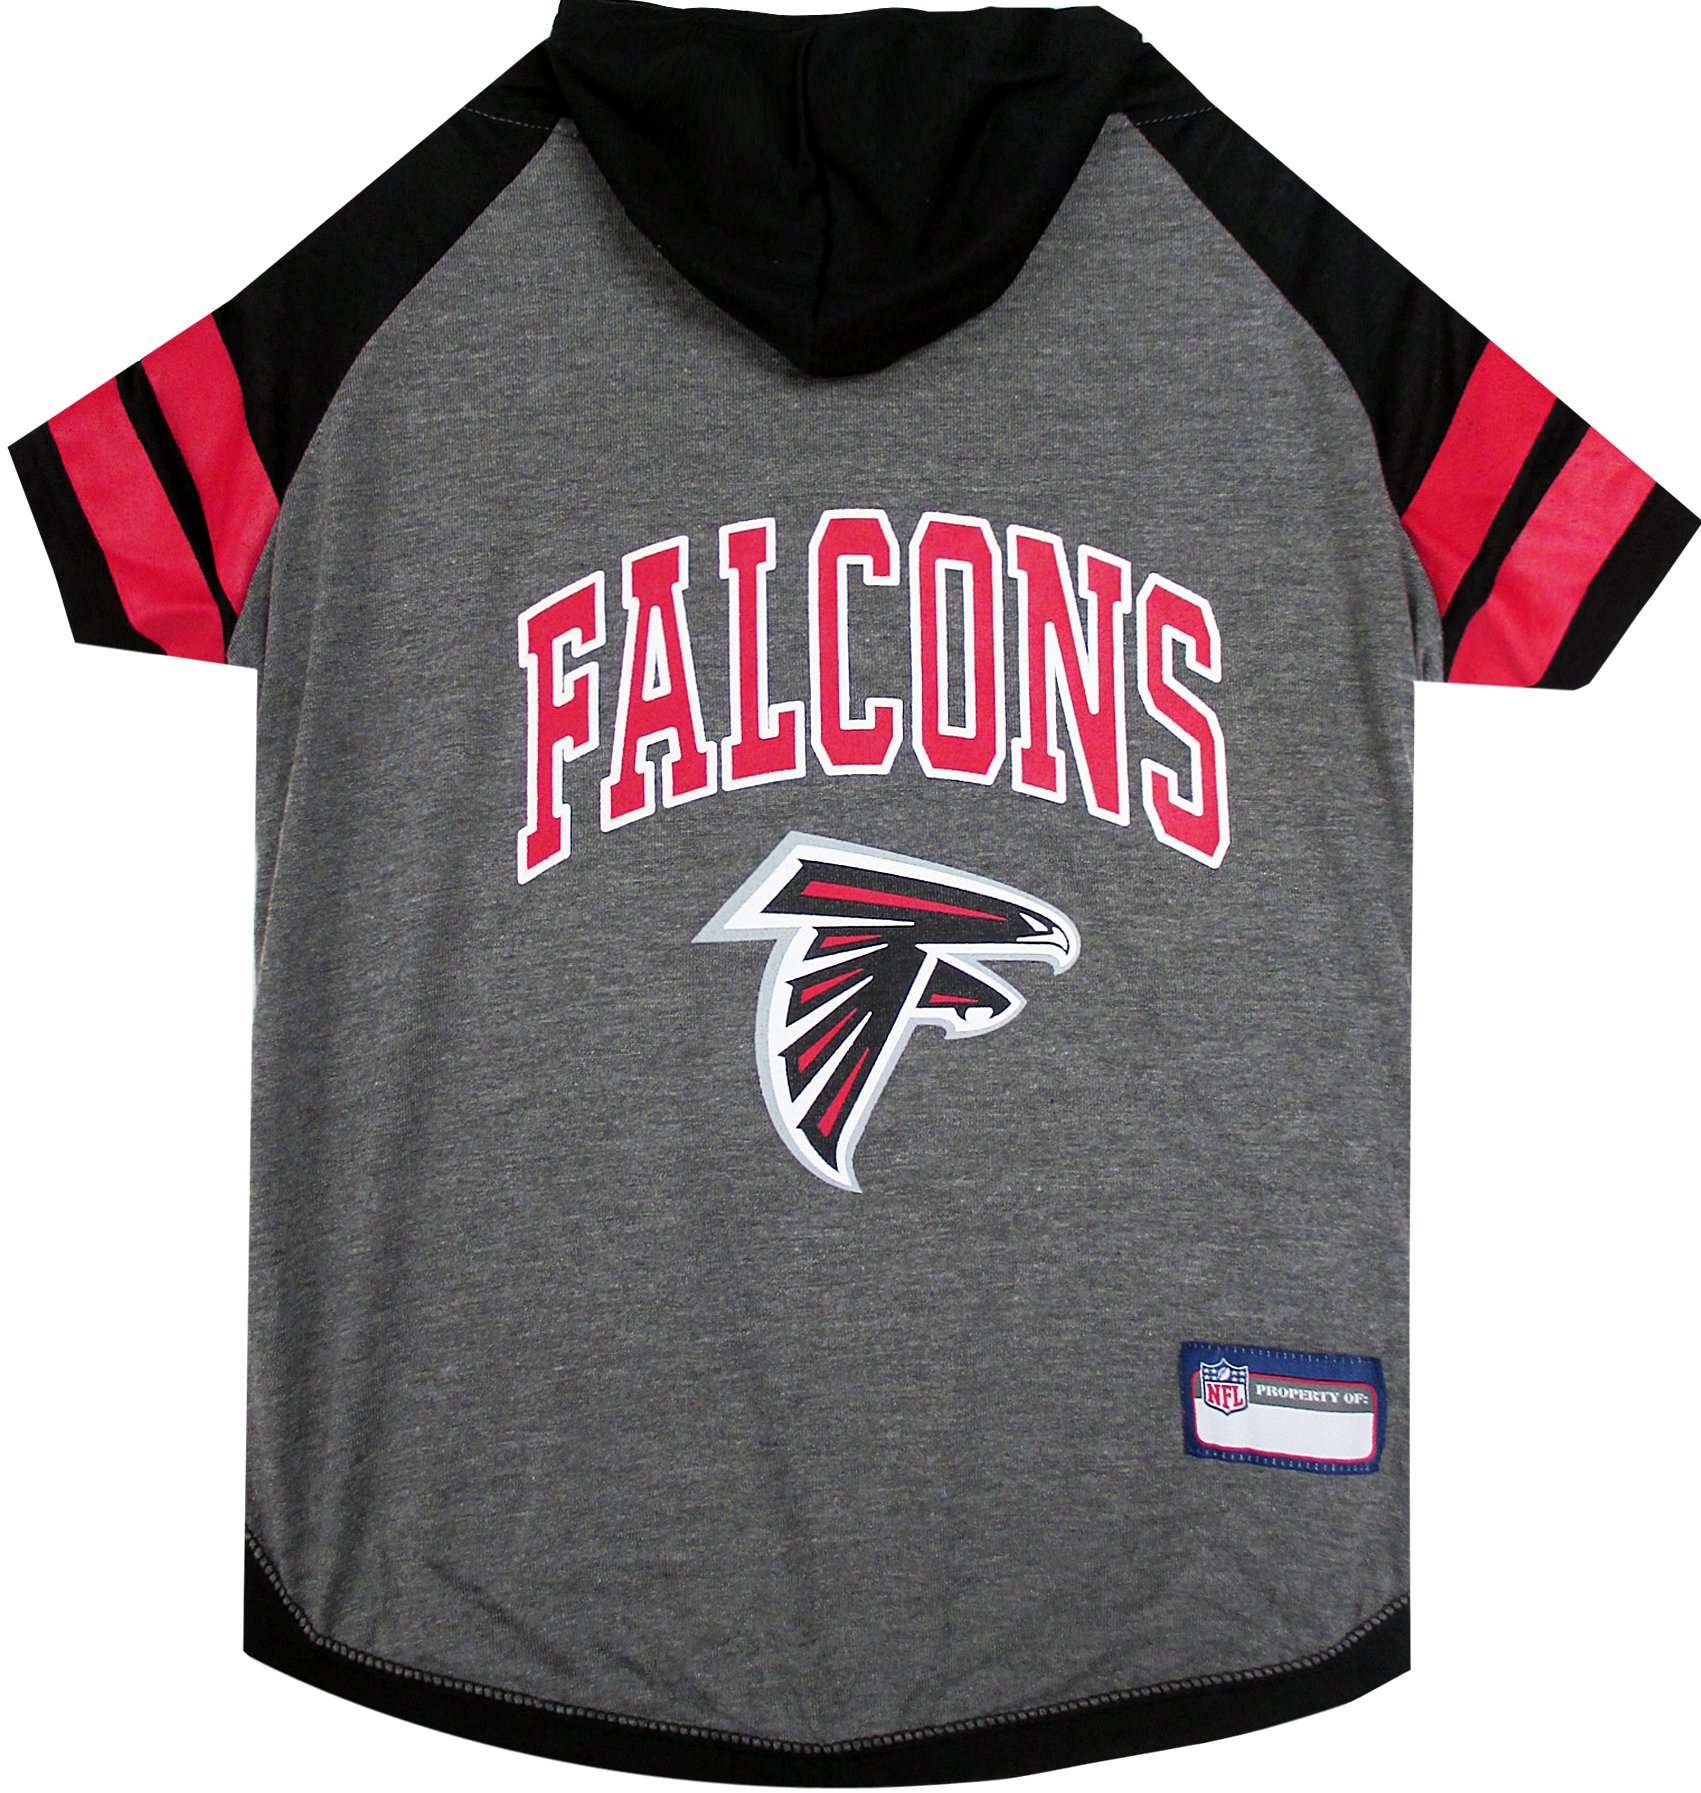 NFL ATLANTA FALCONS HOODIE for DOGS & CATS. | NFL FOOTBALL licensed DOG HOODY Tee Shirt, Medium| Sports HOODY T-Shirt for Pets | Licensed Sporty Dog Shirt.